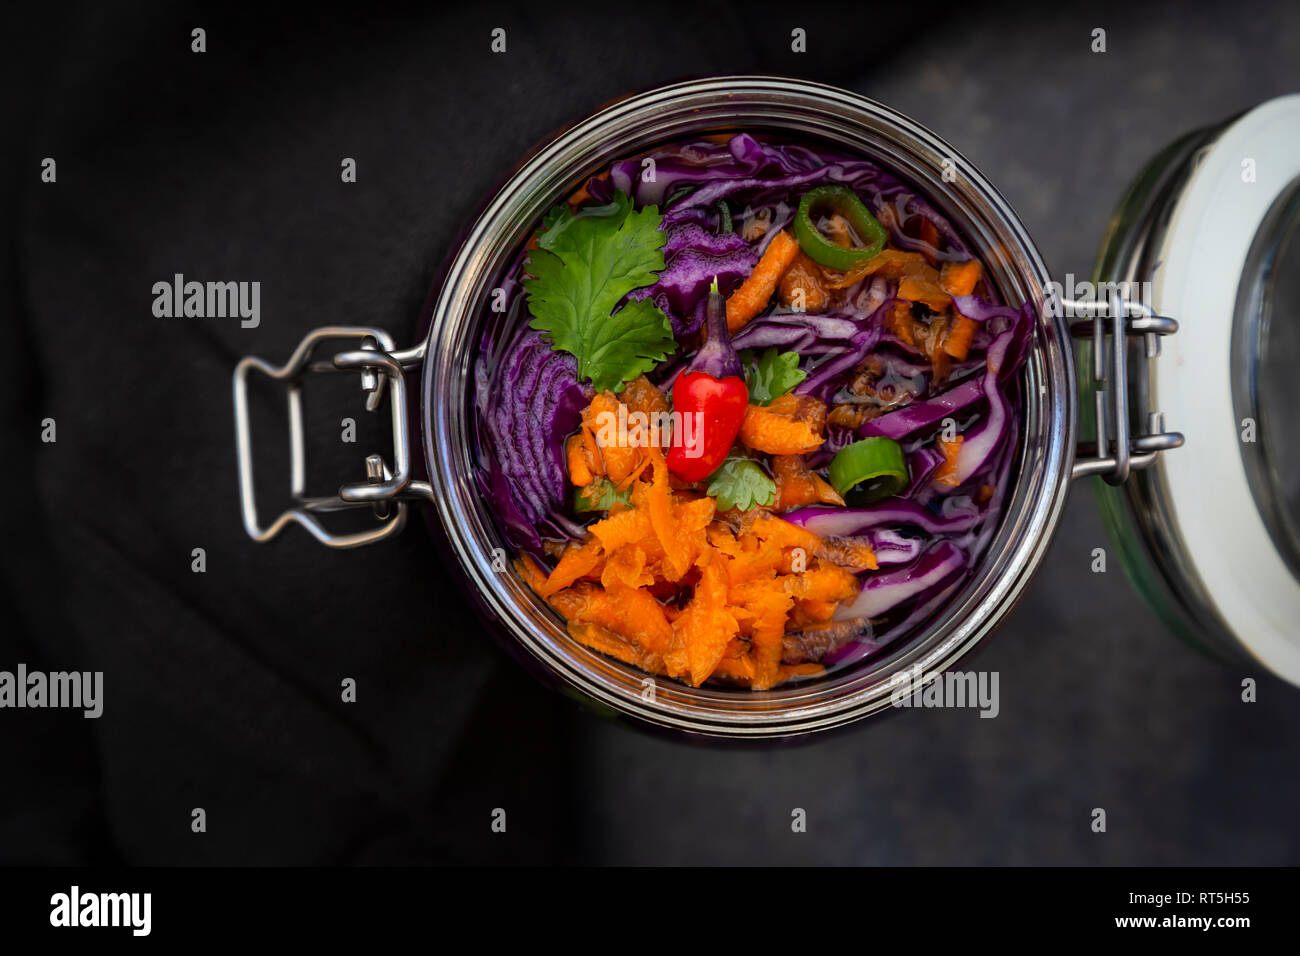 Homemade red cabbage, fermented, with chili, carrot and coriander, in a preserving jar - Stock Image